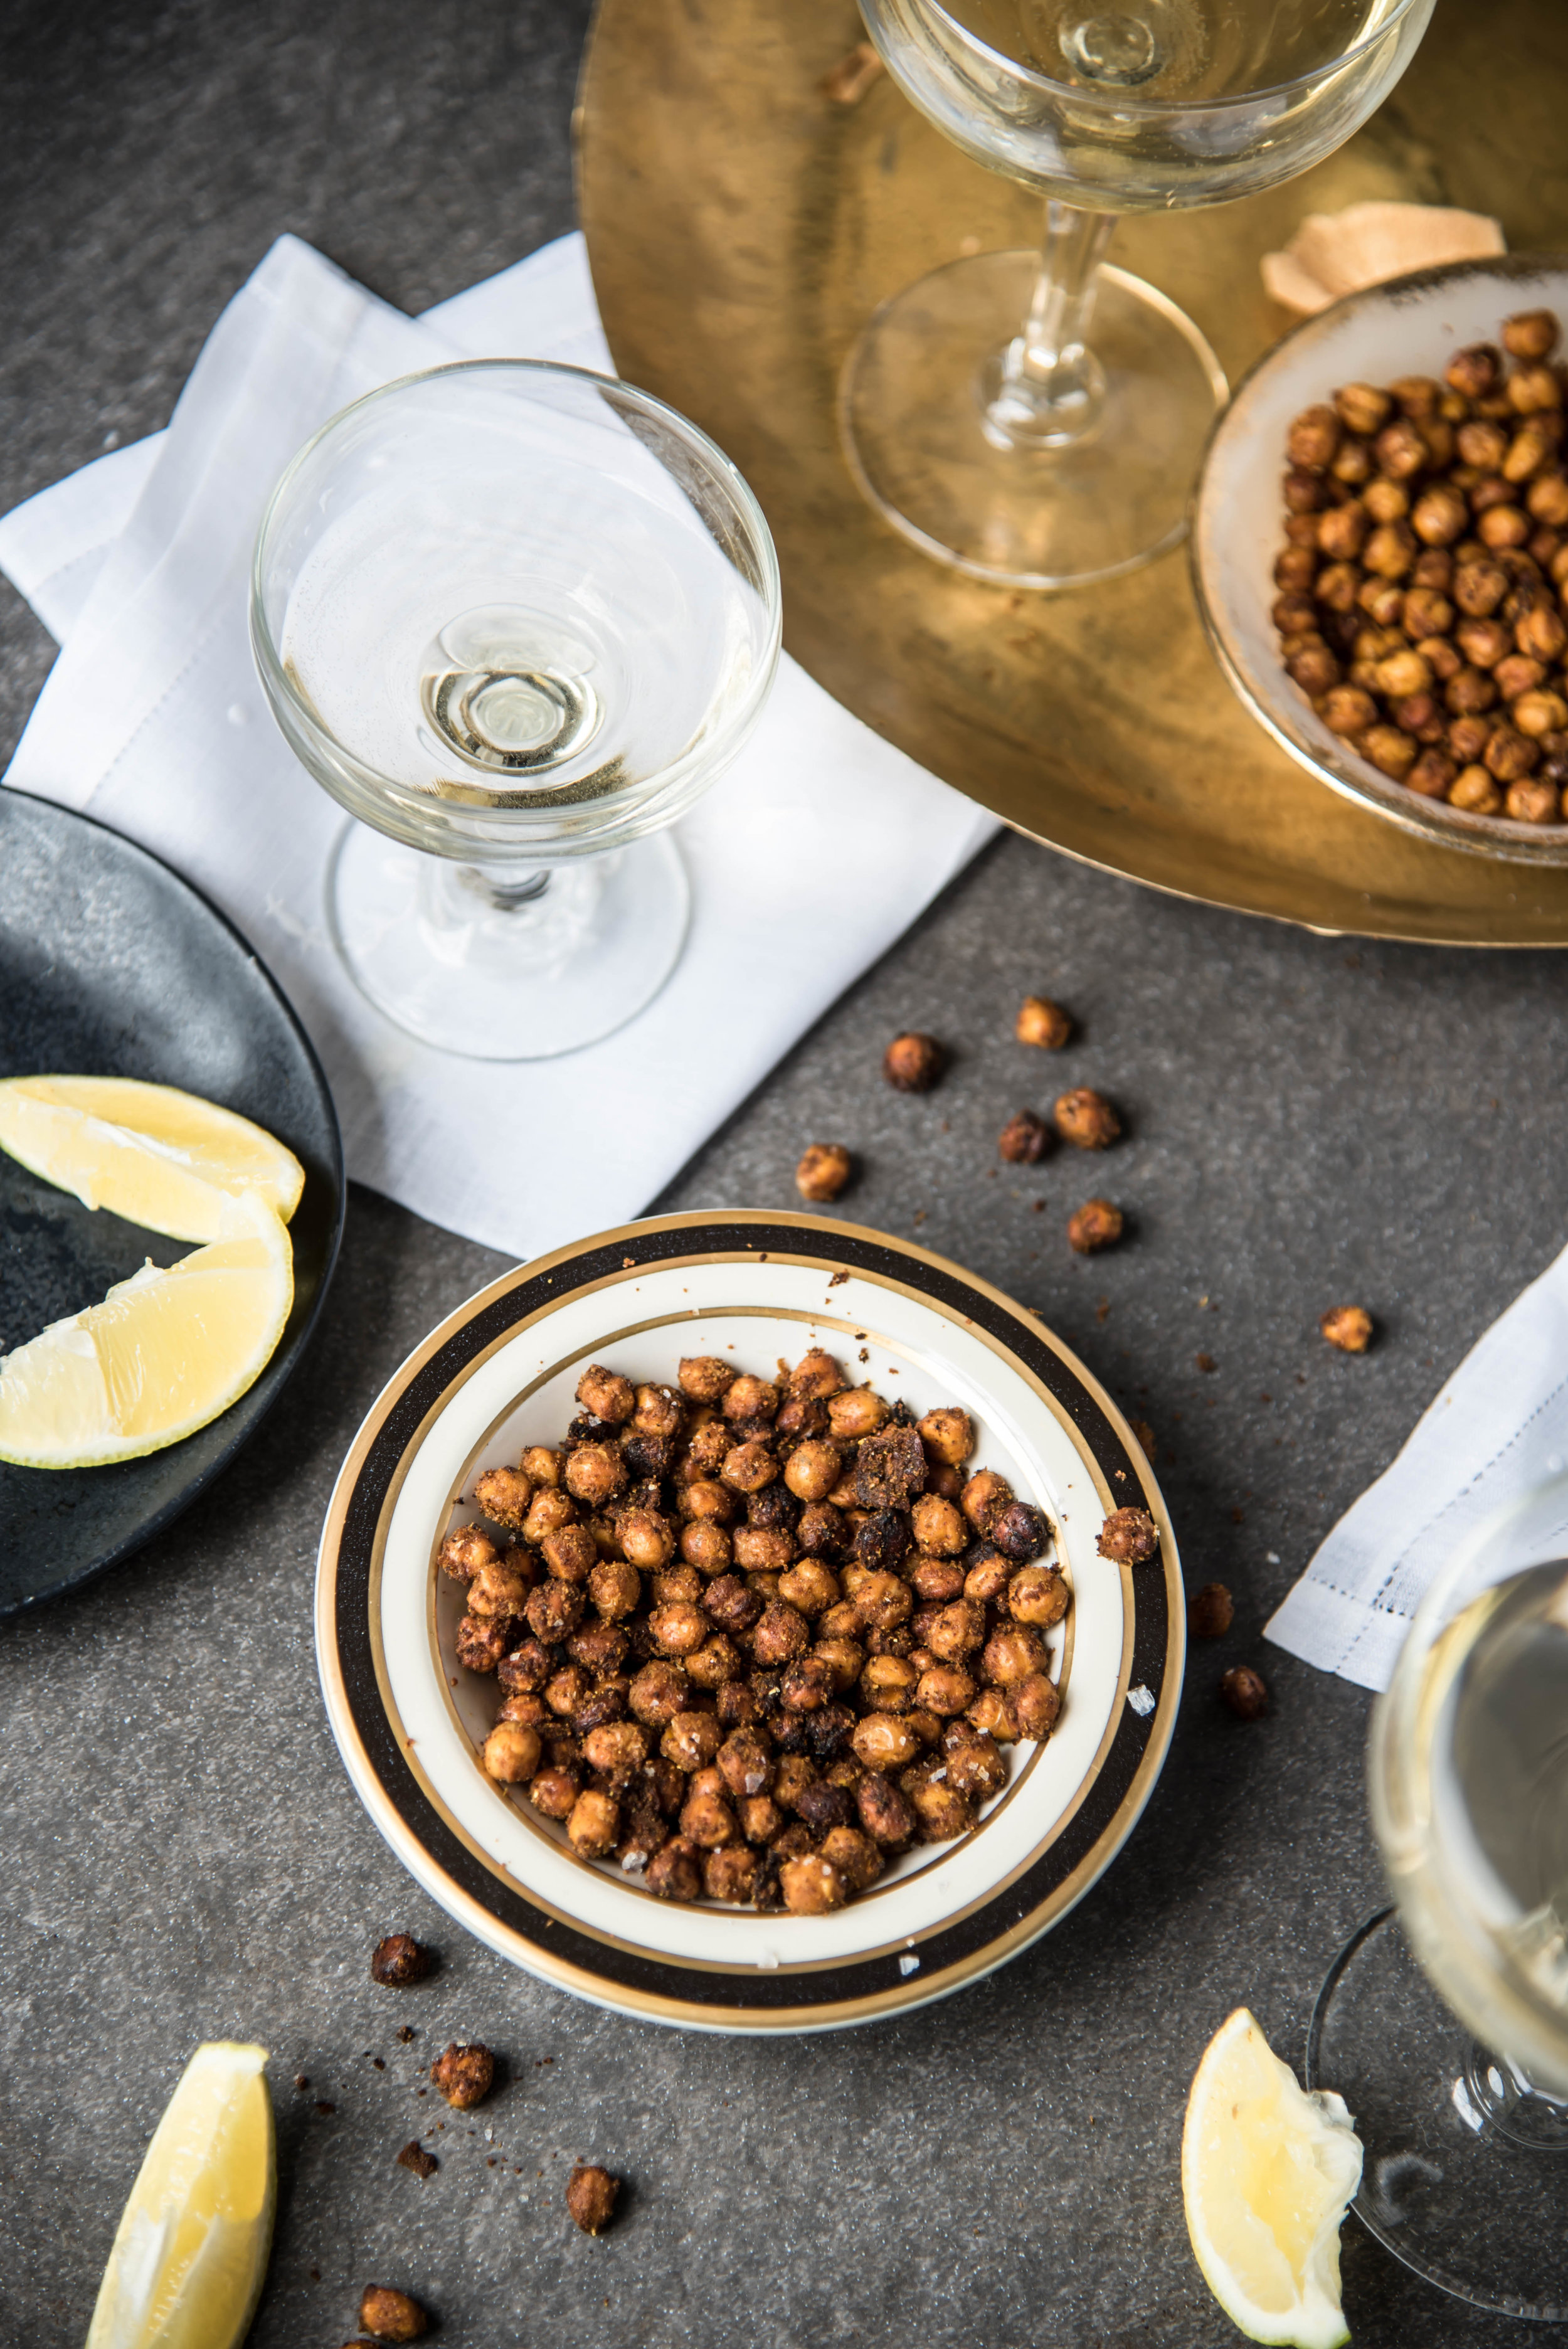 ROSE & IVY Journal Roasted Spiced Chickpeas